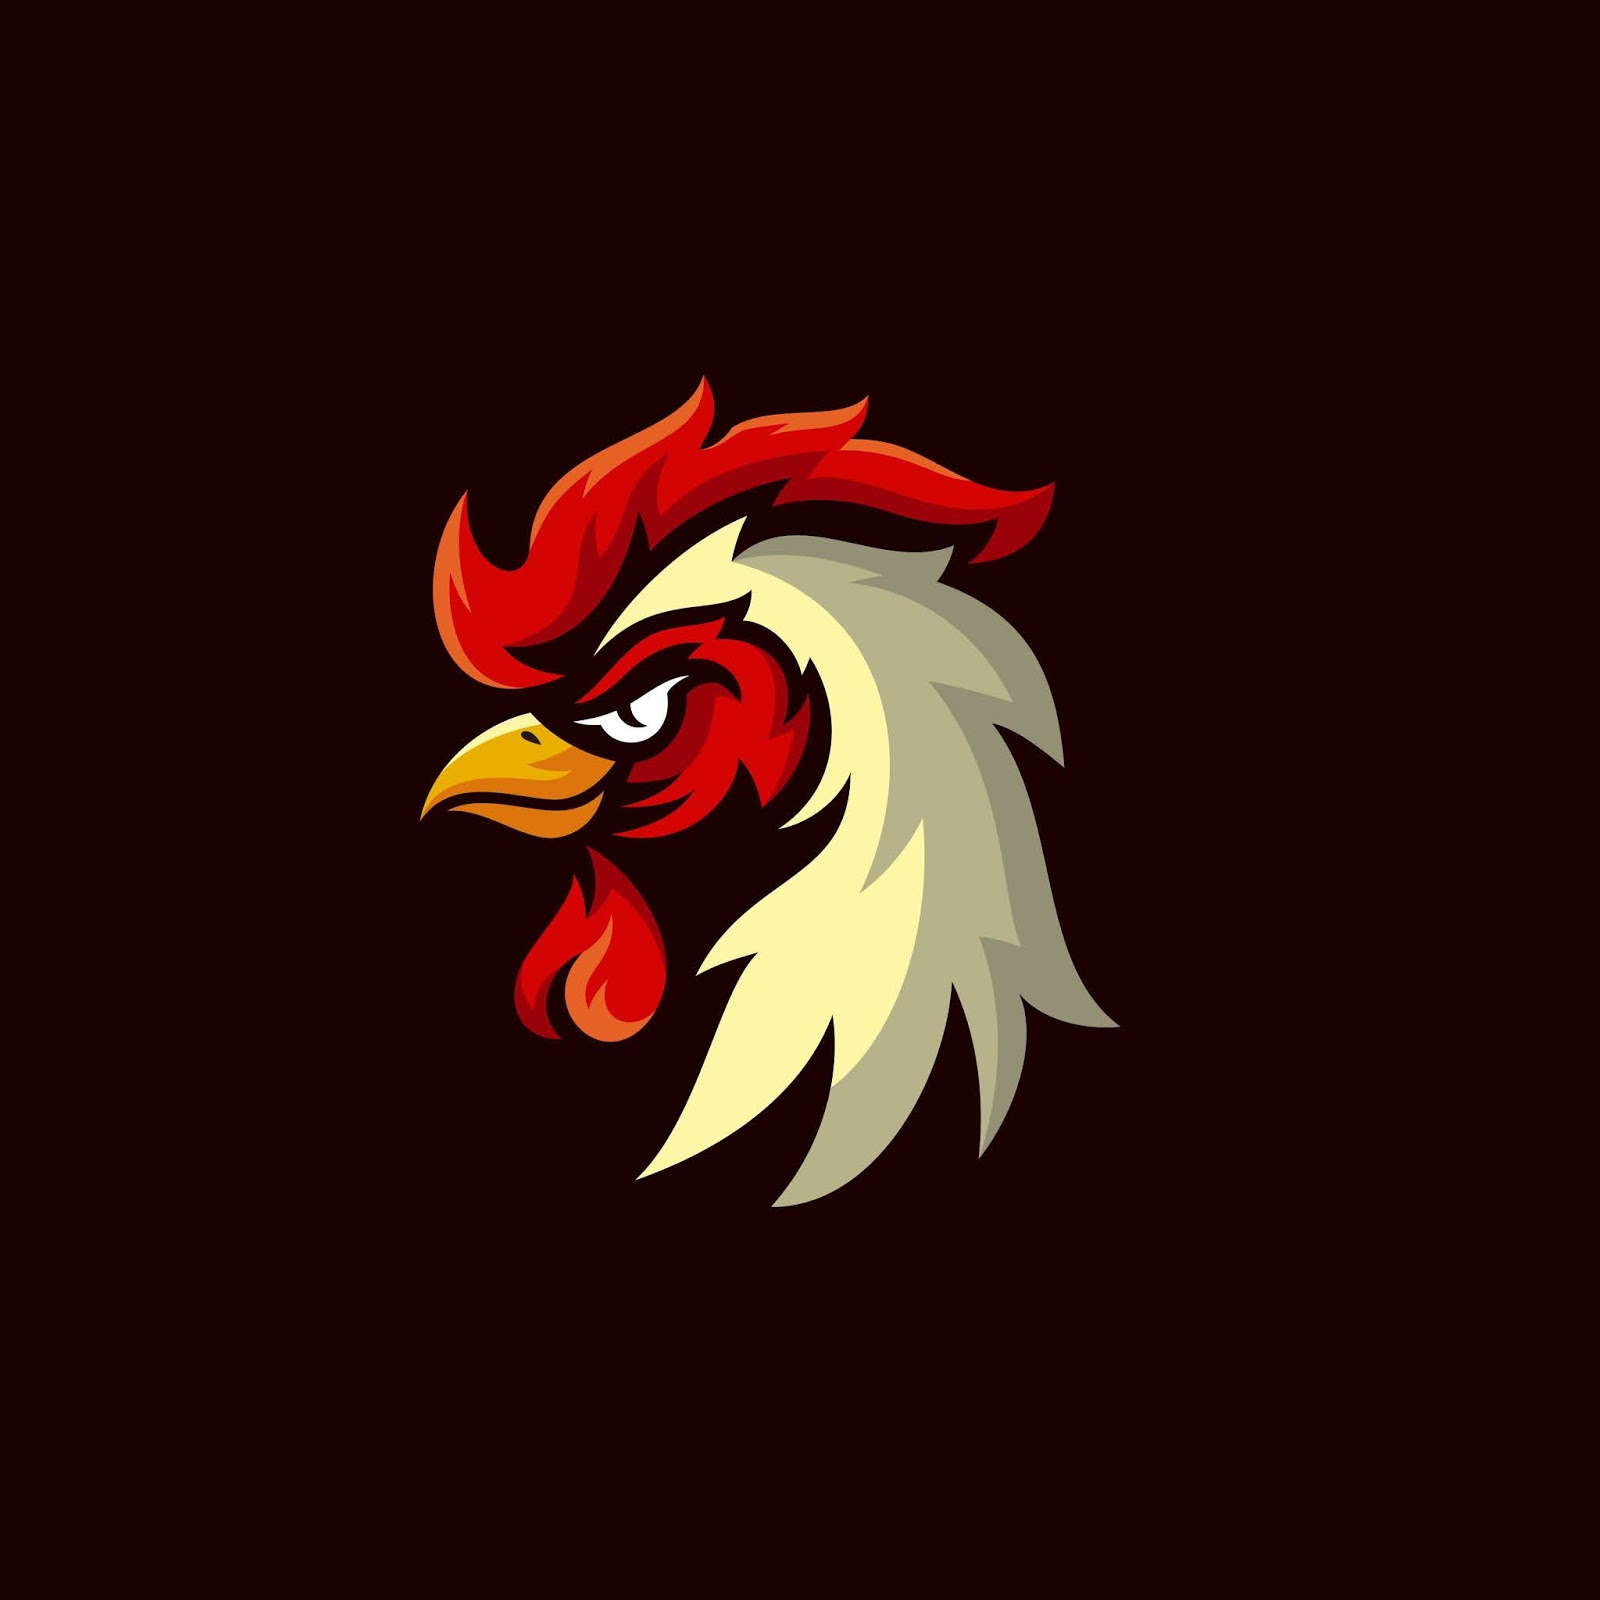 Rooster Mascot Logo Design Free Download Vector CDR, AI, EPS and PNG Formats